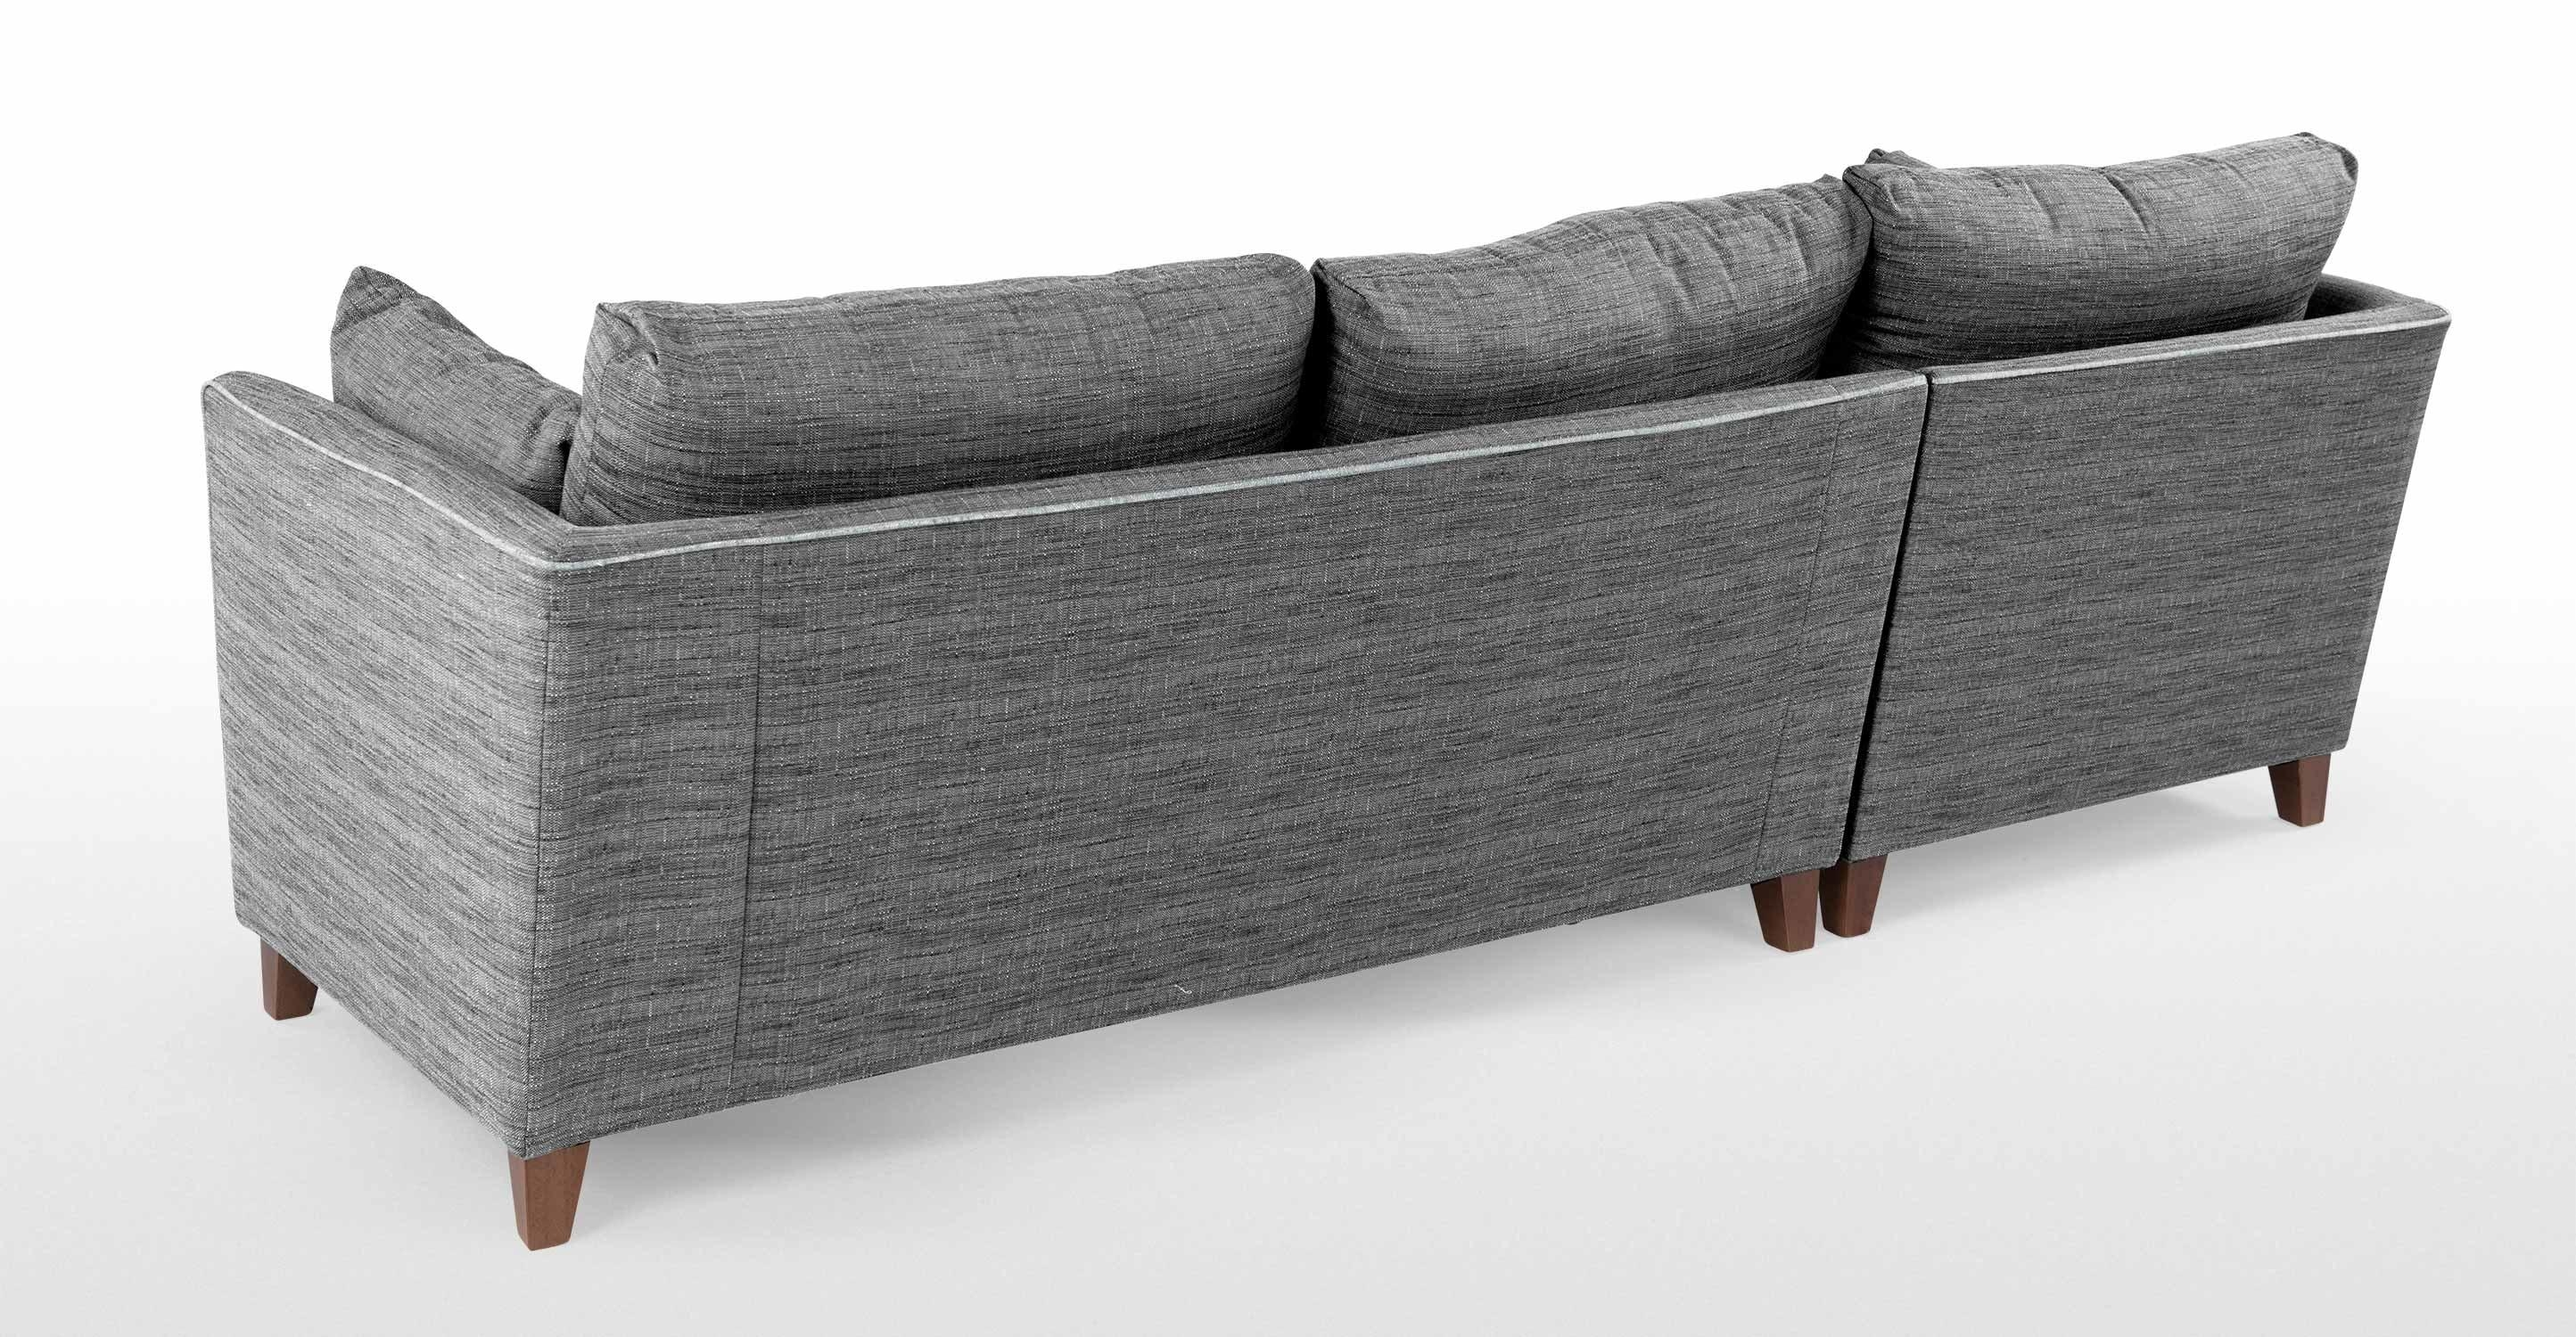 Foam Corner Sofa Bed – Leather Sectional Sofa In Cheap Corner Sofa Beds (View 6 of 20)